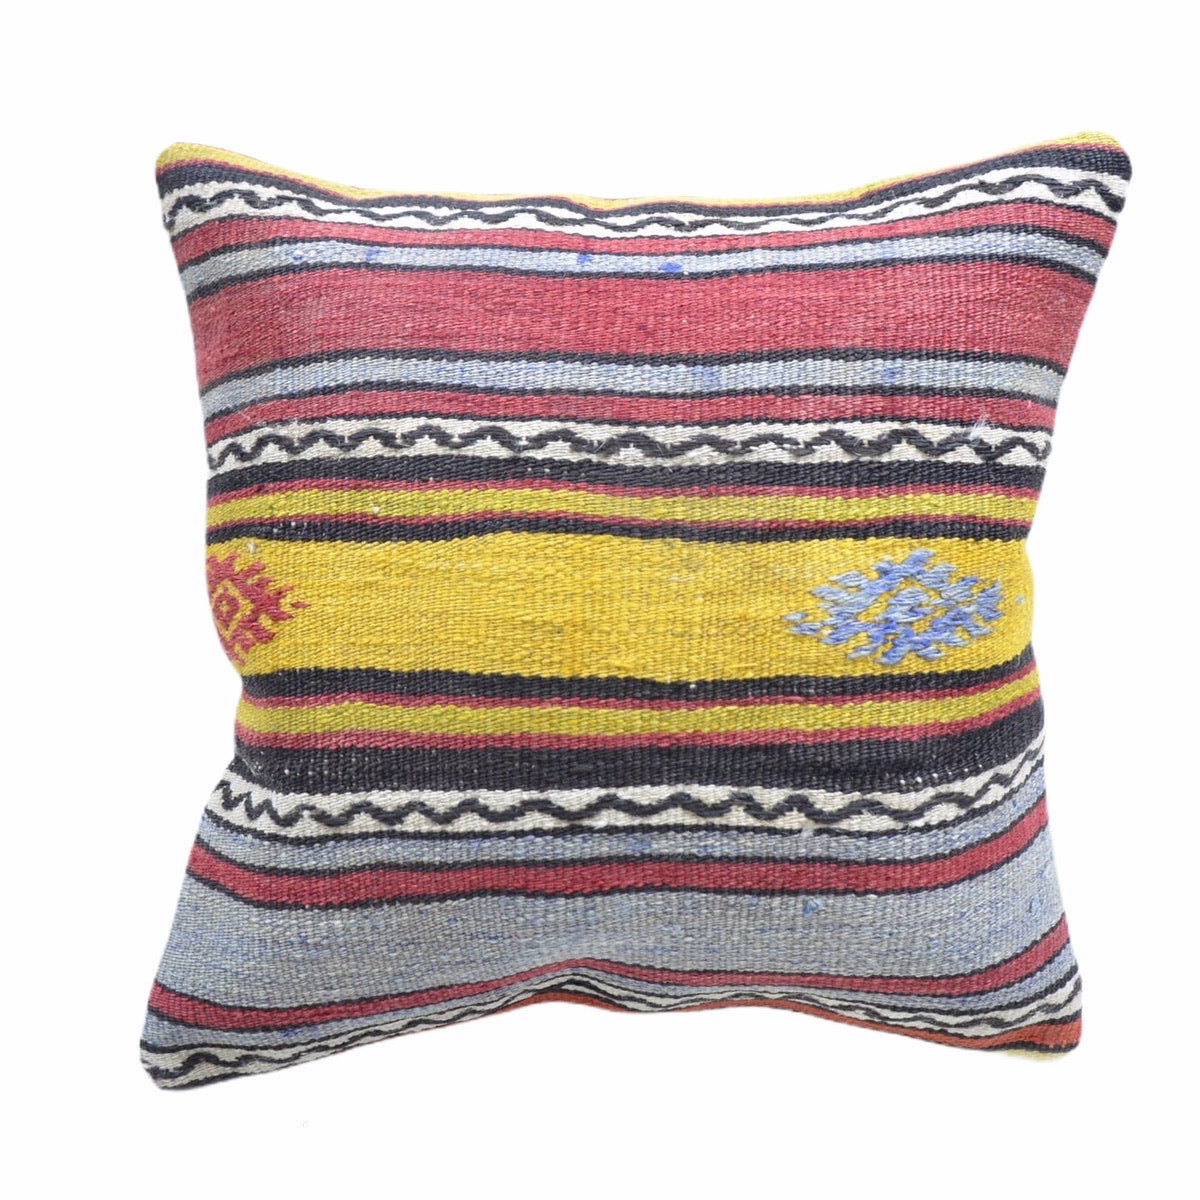 Kilim Pillow Cover 17